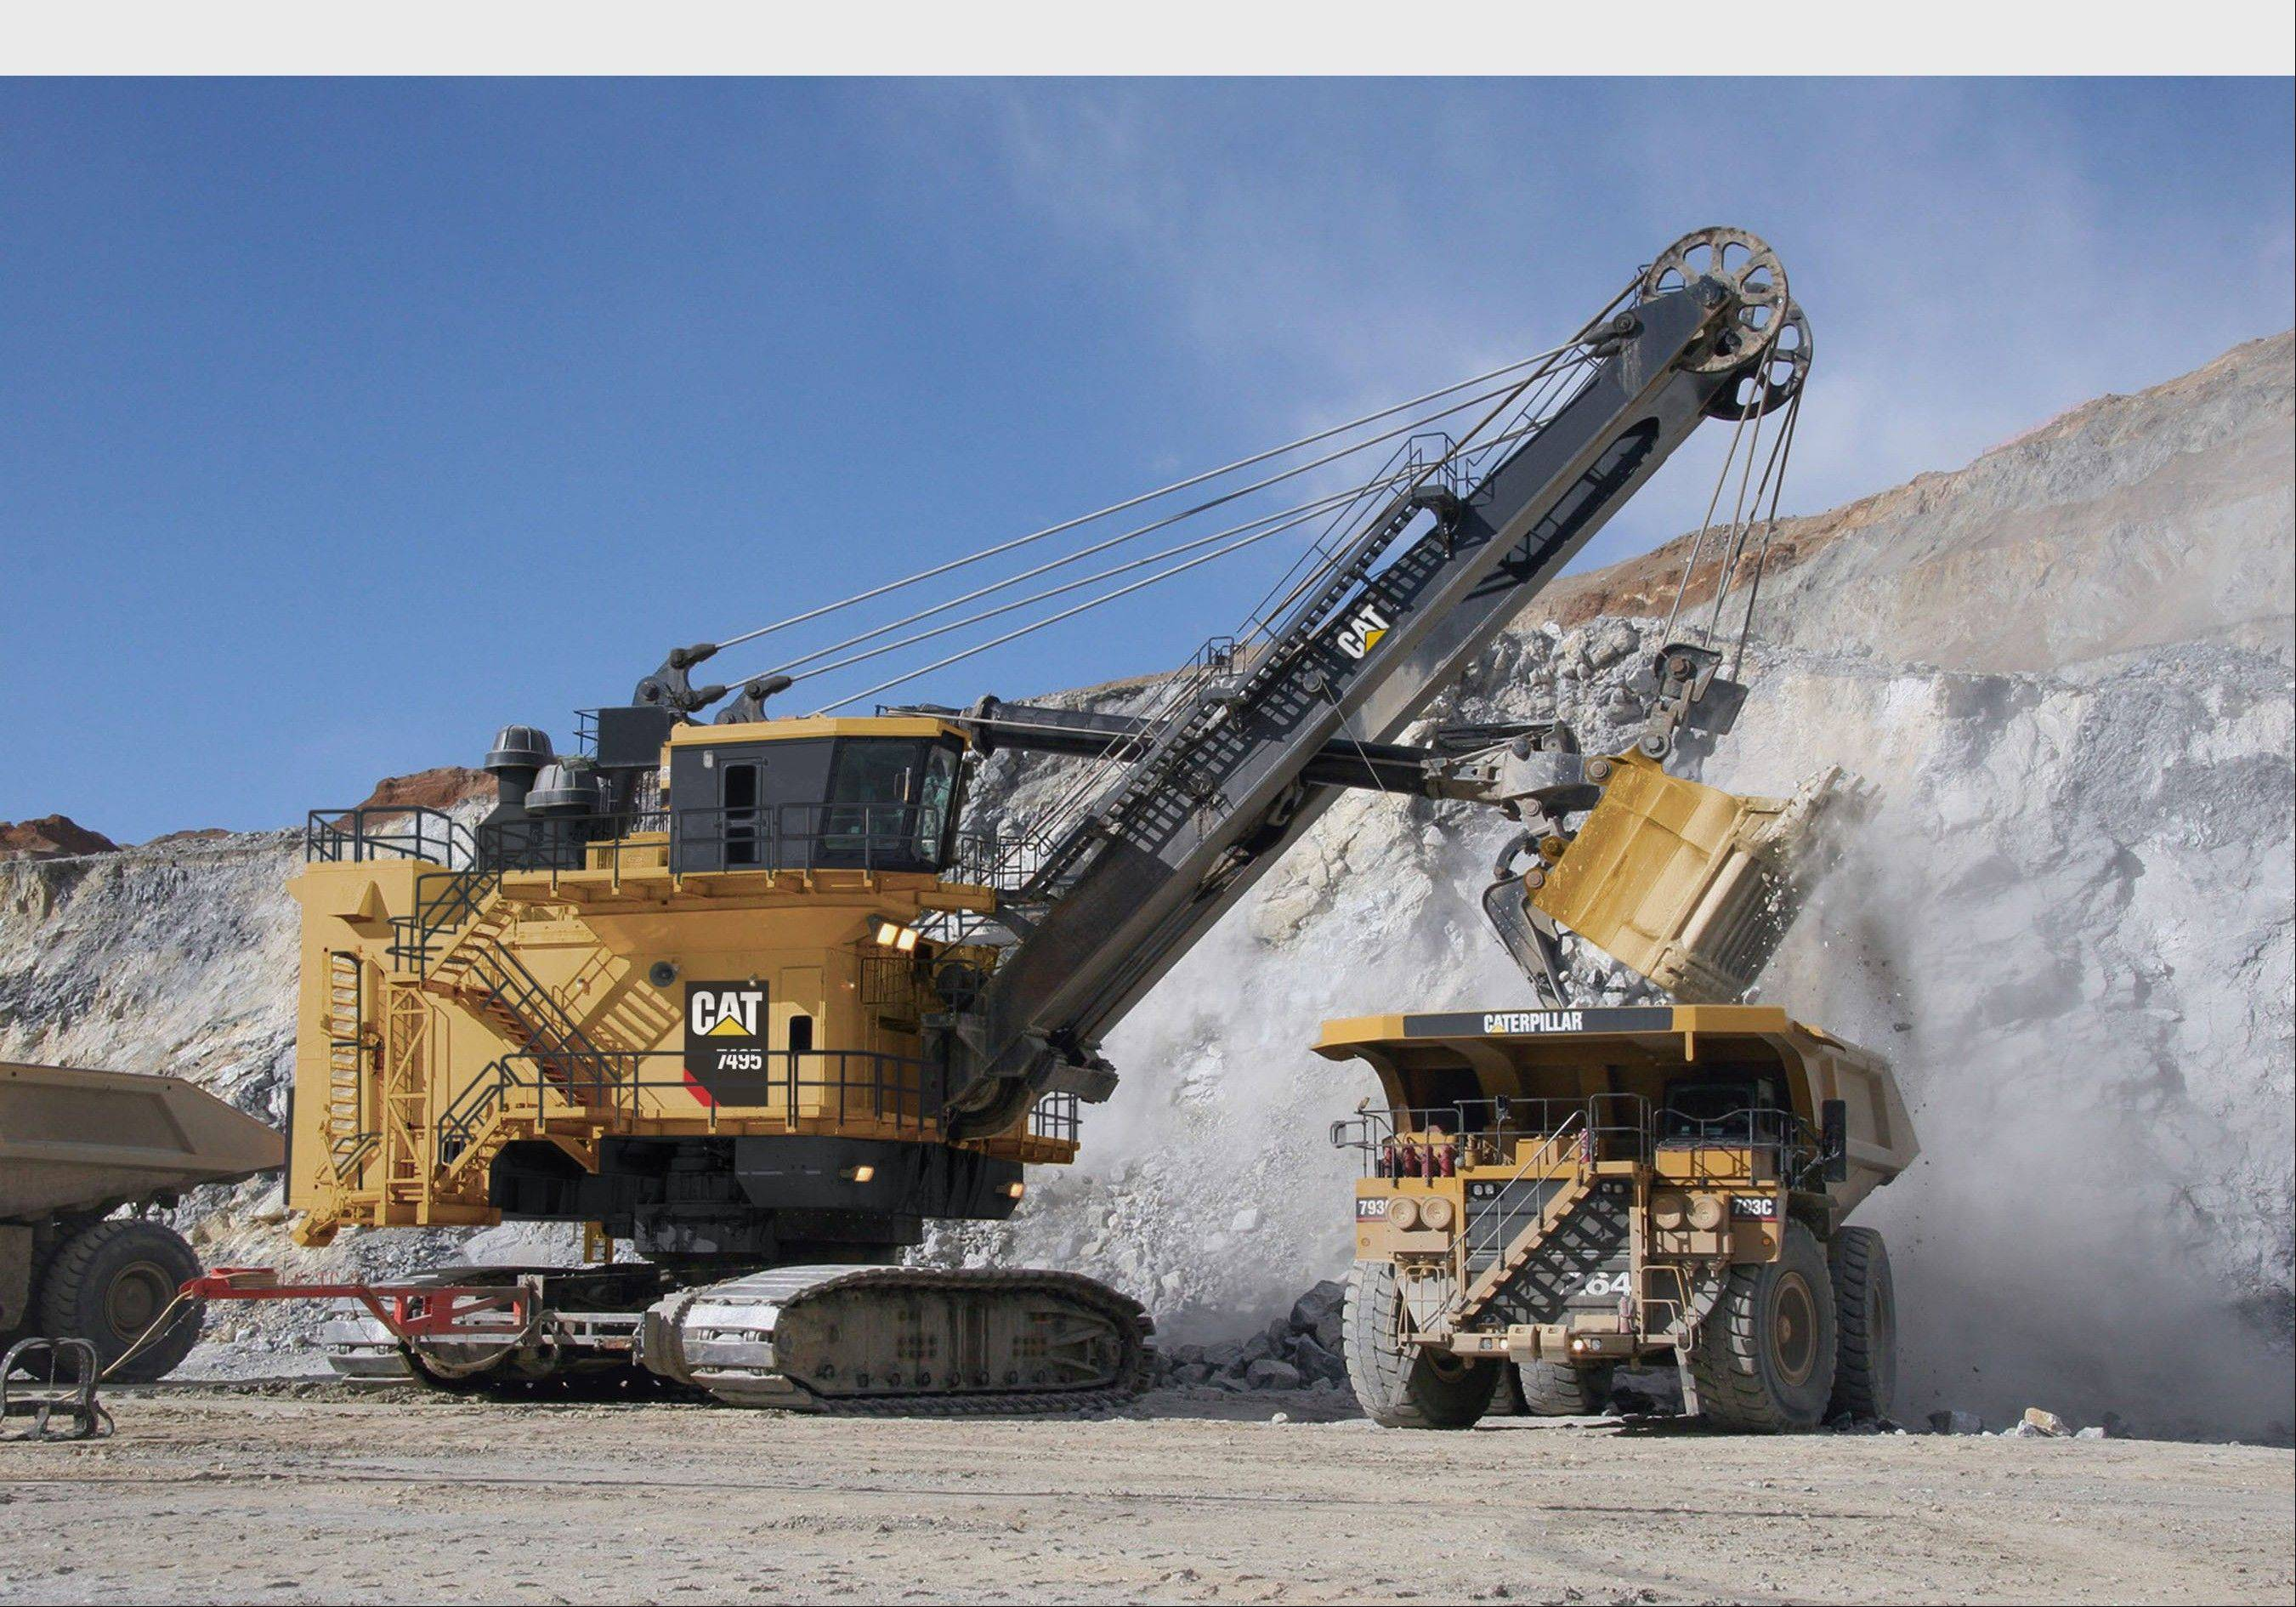 Above is the Cat(R) 7495 Electric Rope Shovel, formerly the Bucyrus 495. This shovel is loading a Cat 793C Mining Truck.